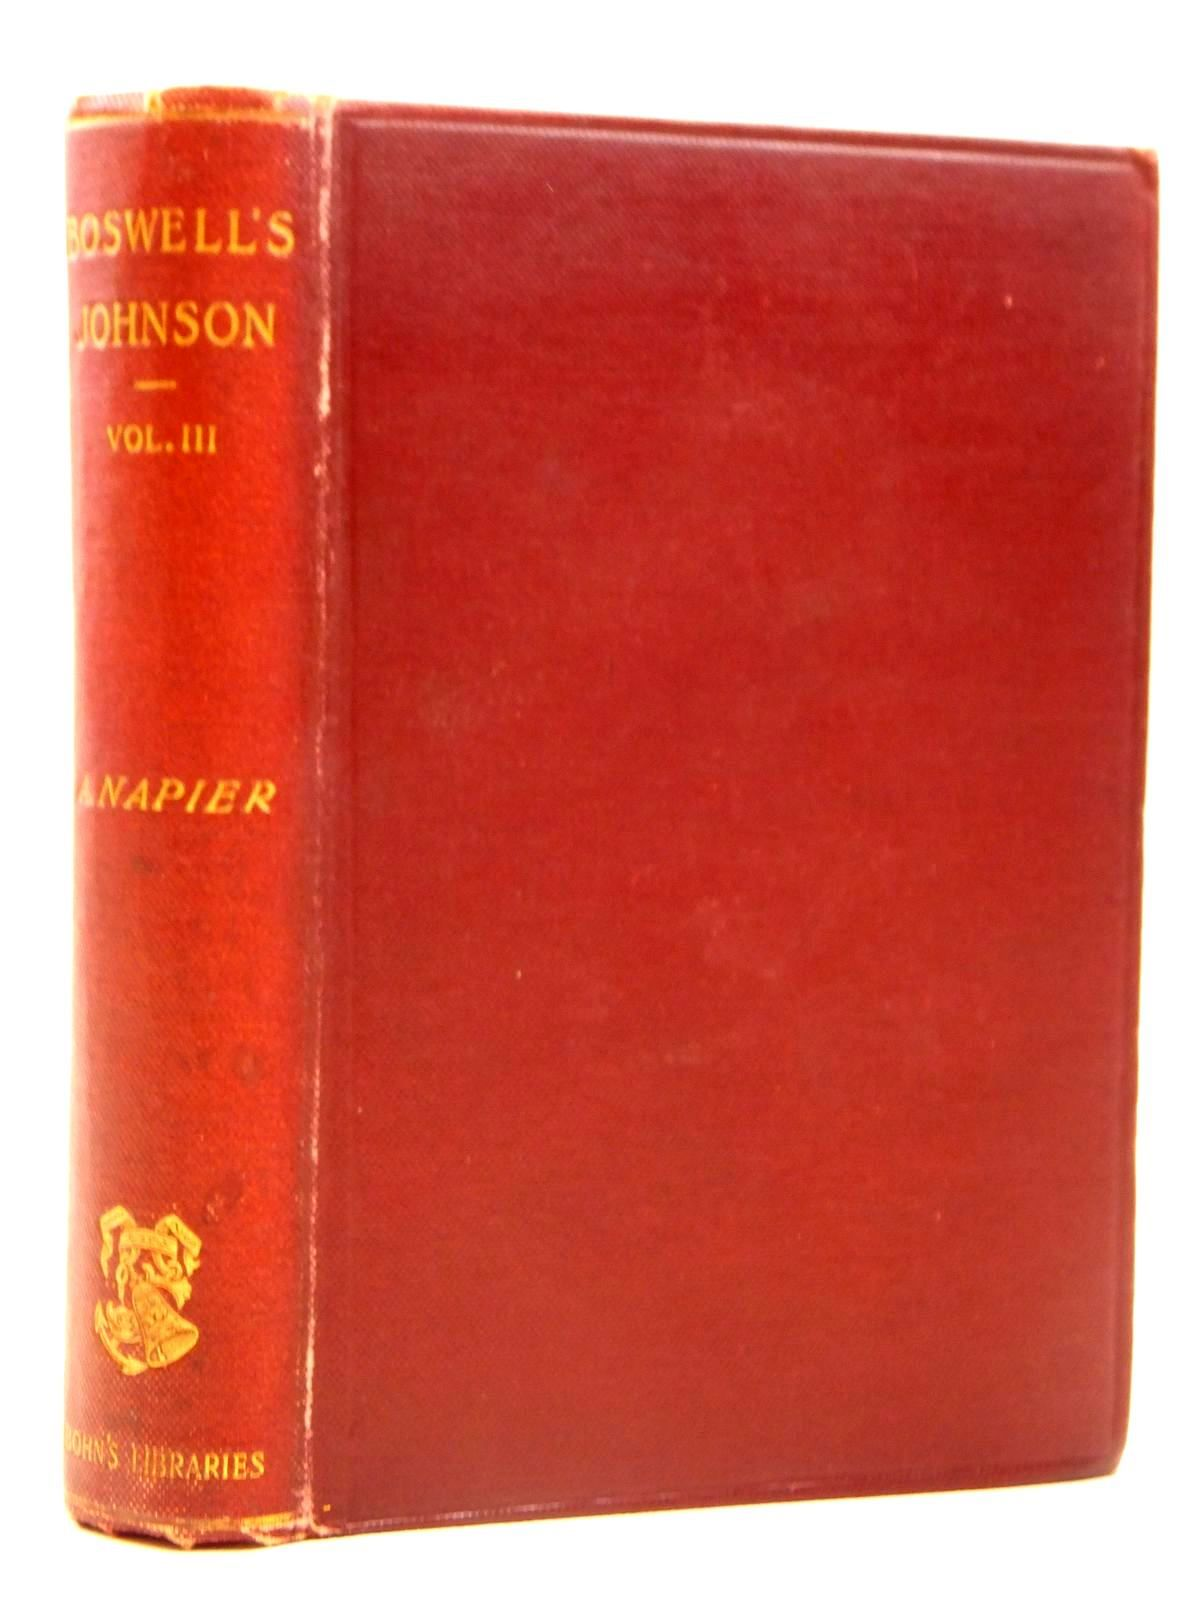 Photo of THE LIFE OF SAMUEL JOHNSON VOLUME III written by Boswell, James<br />Napier, published by George Bell & Sons (STOCK CODE: 2121688)  for sale by Stella & Rose's Books